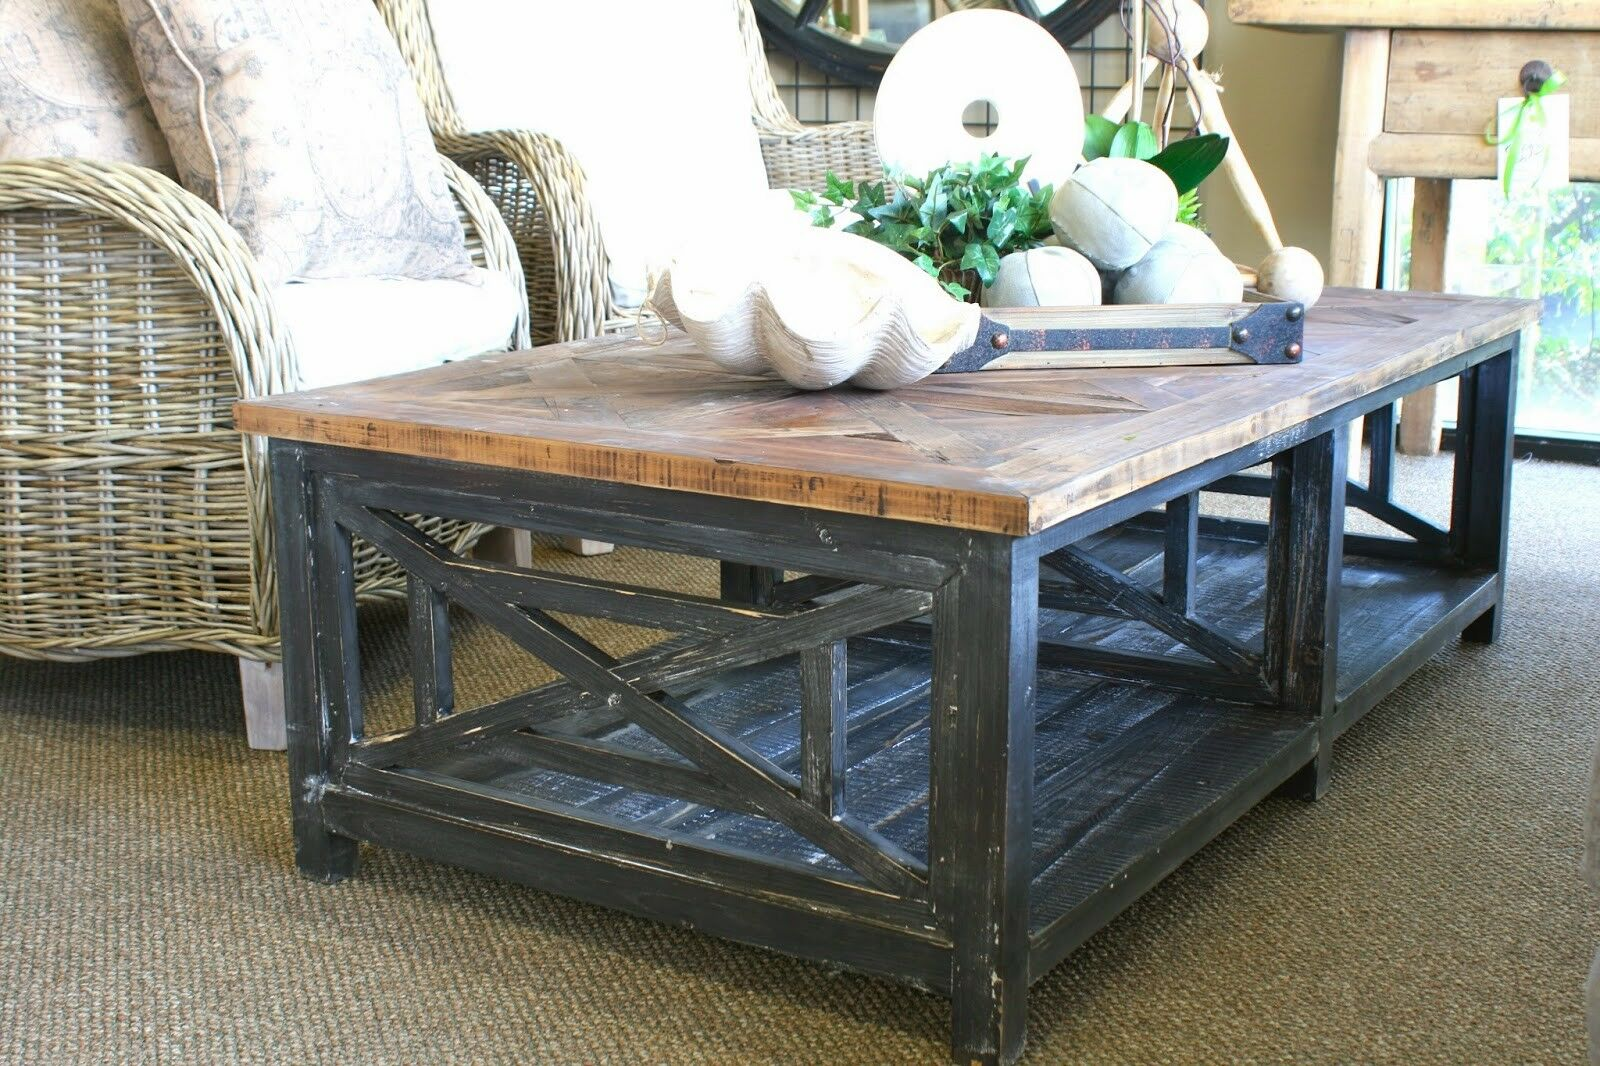 Picture of: Reclaimed Wood Brushed Black Rectangular Coffee Table For Sale Online